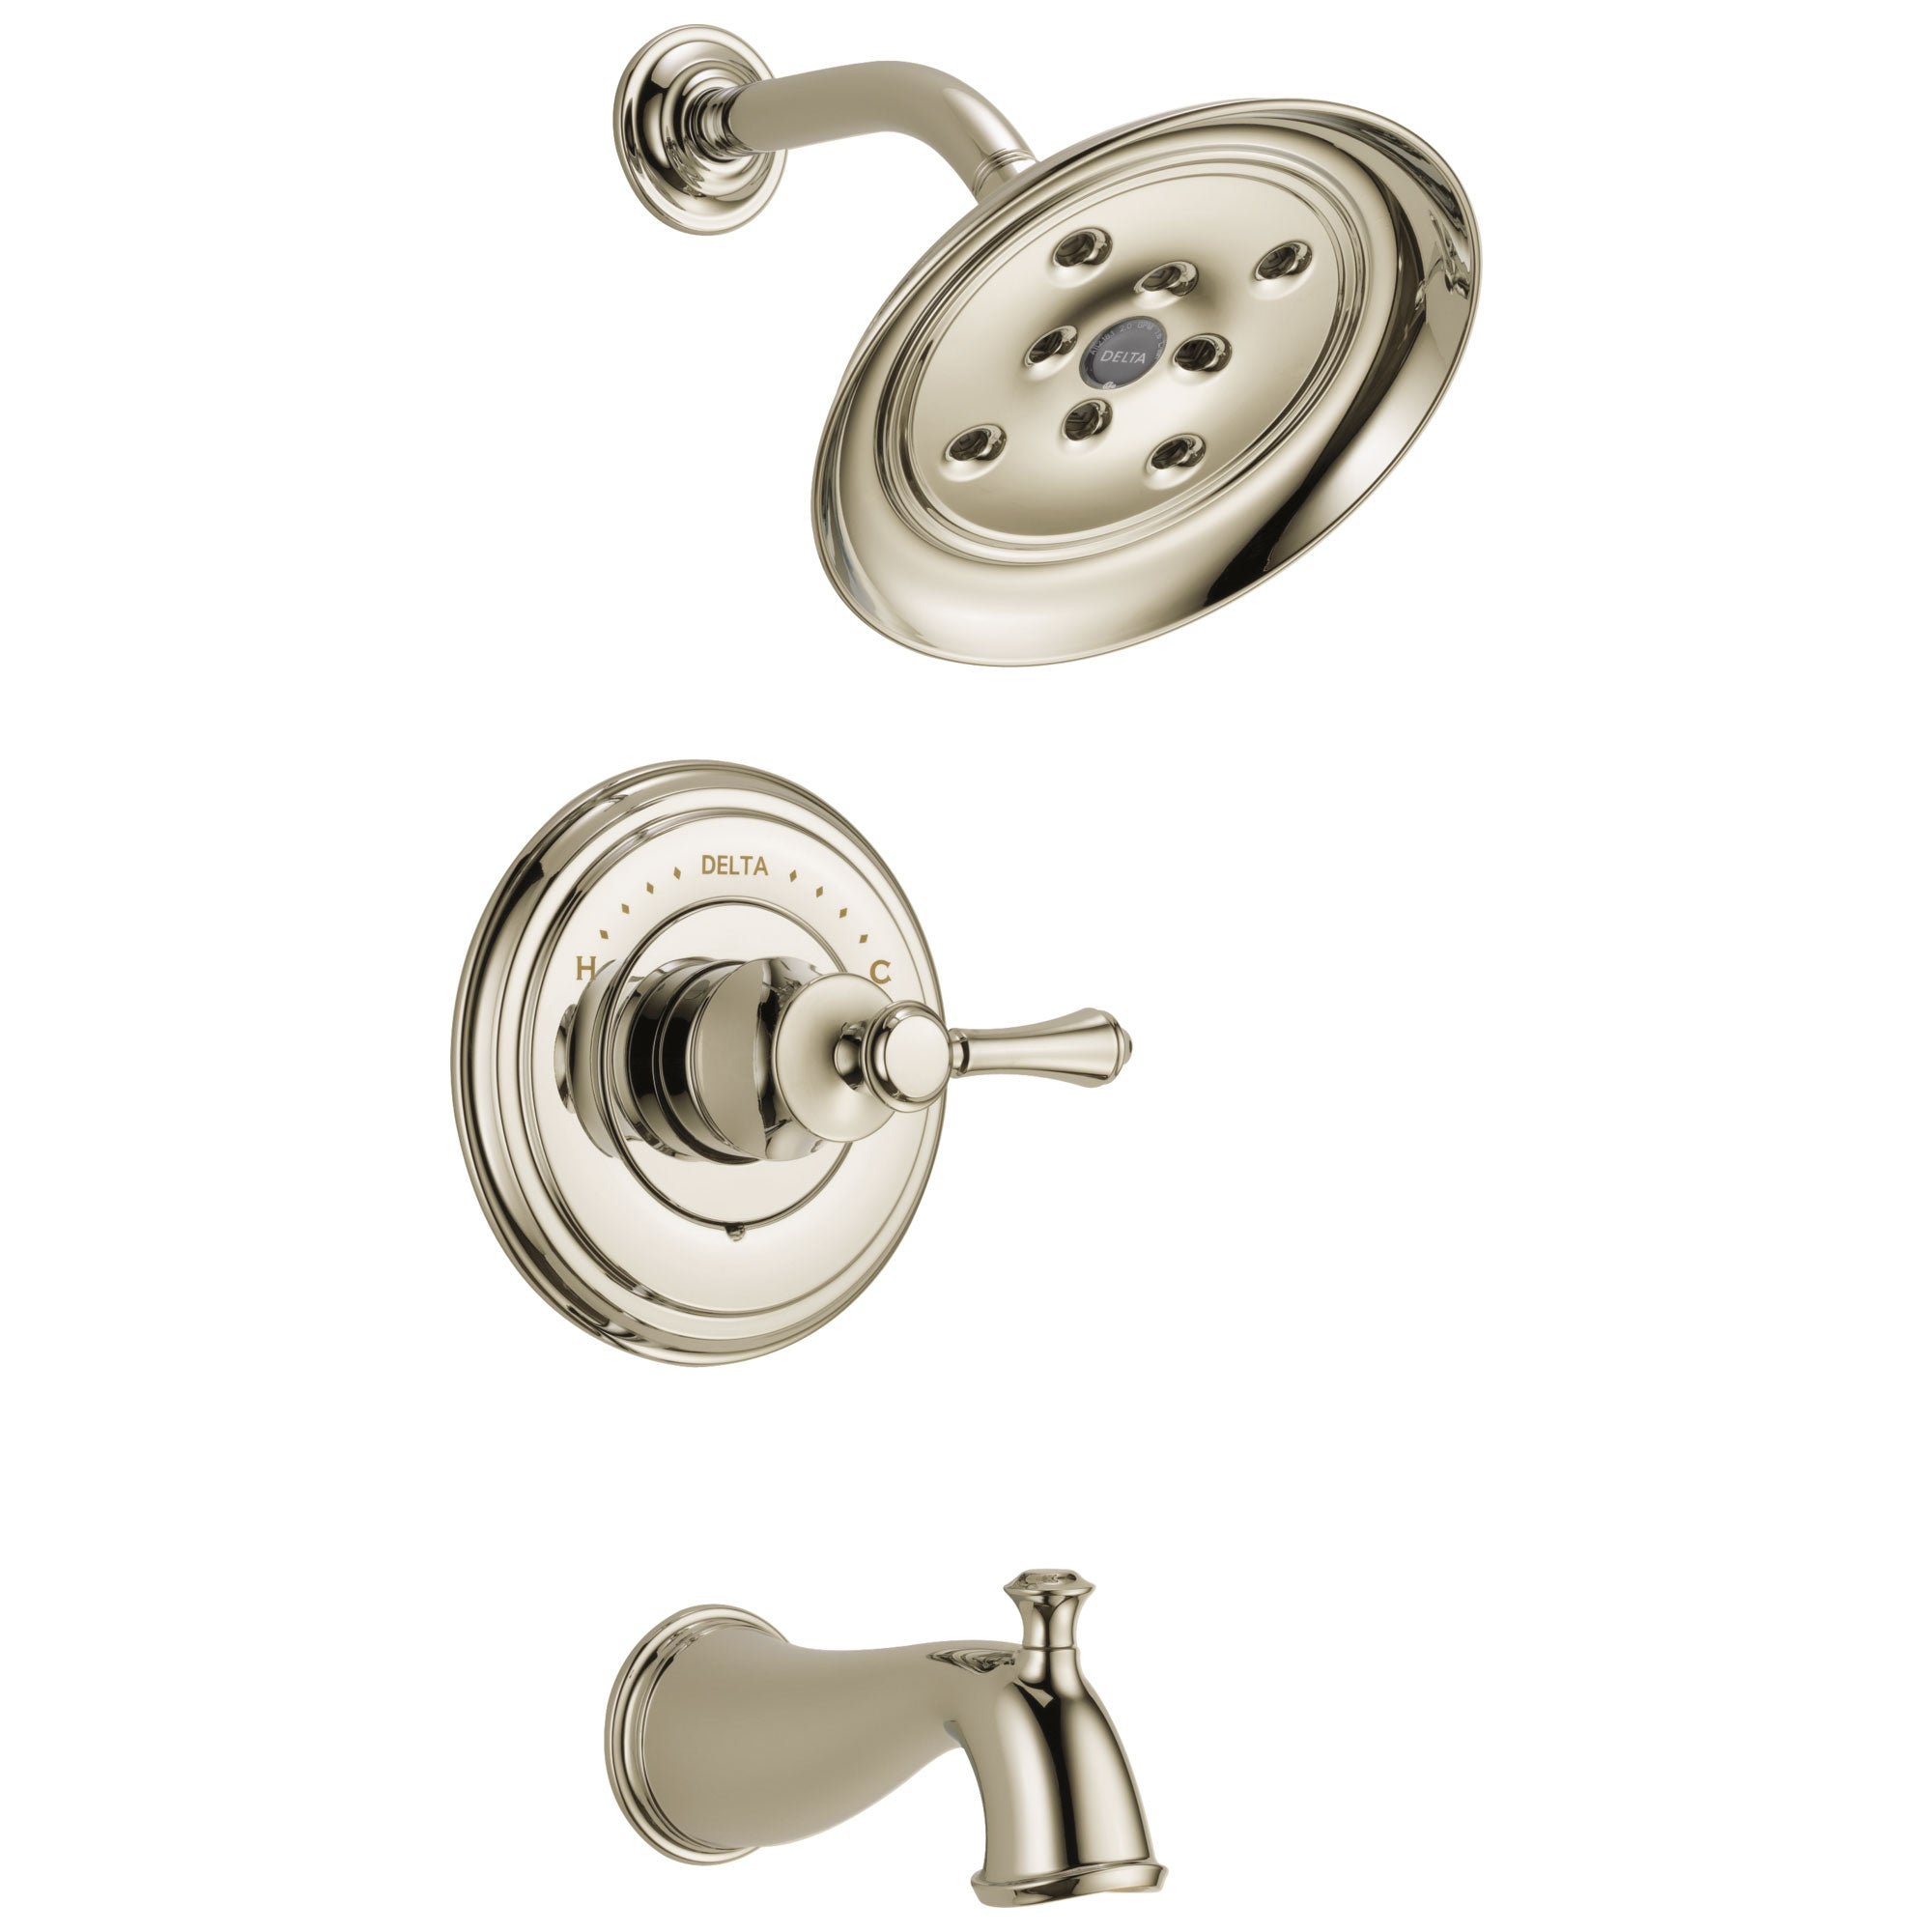 Delta Cassidy Collection Polished Nickel Monitor 14 Tub and Shower Faucet Combination INCLUDES Single Lever Handle and Rough-Valve with Stops D1480V